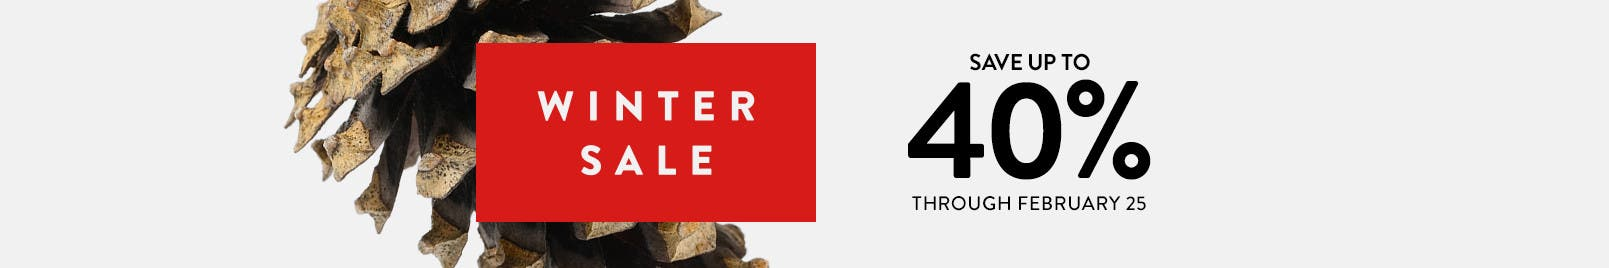 Winter Sale: save up to 40% through February 25.